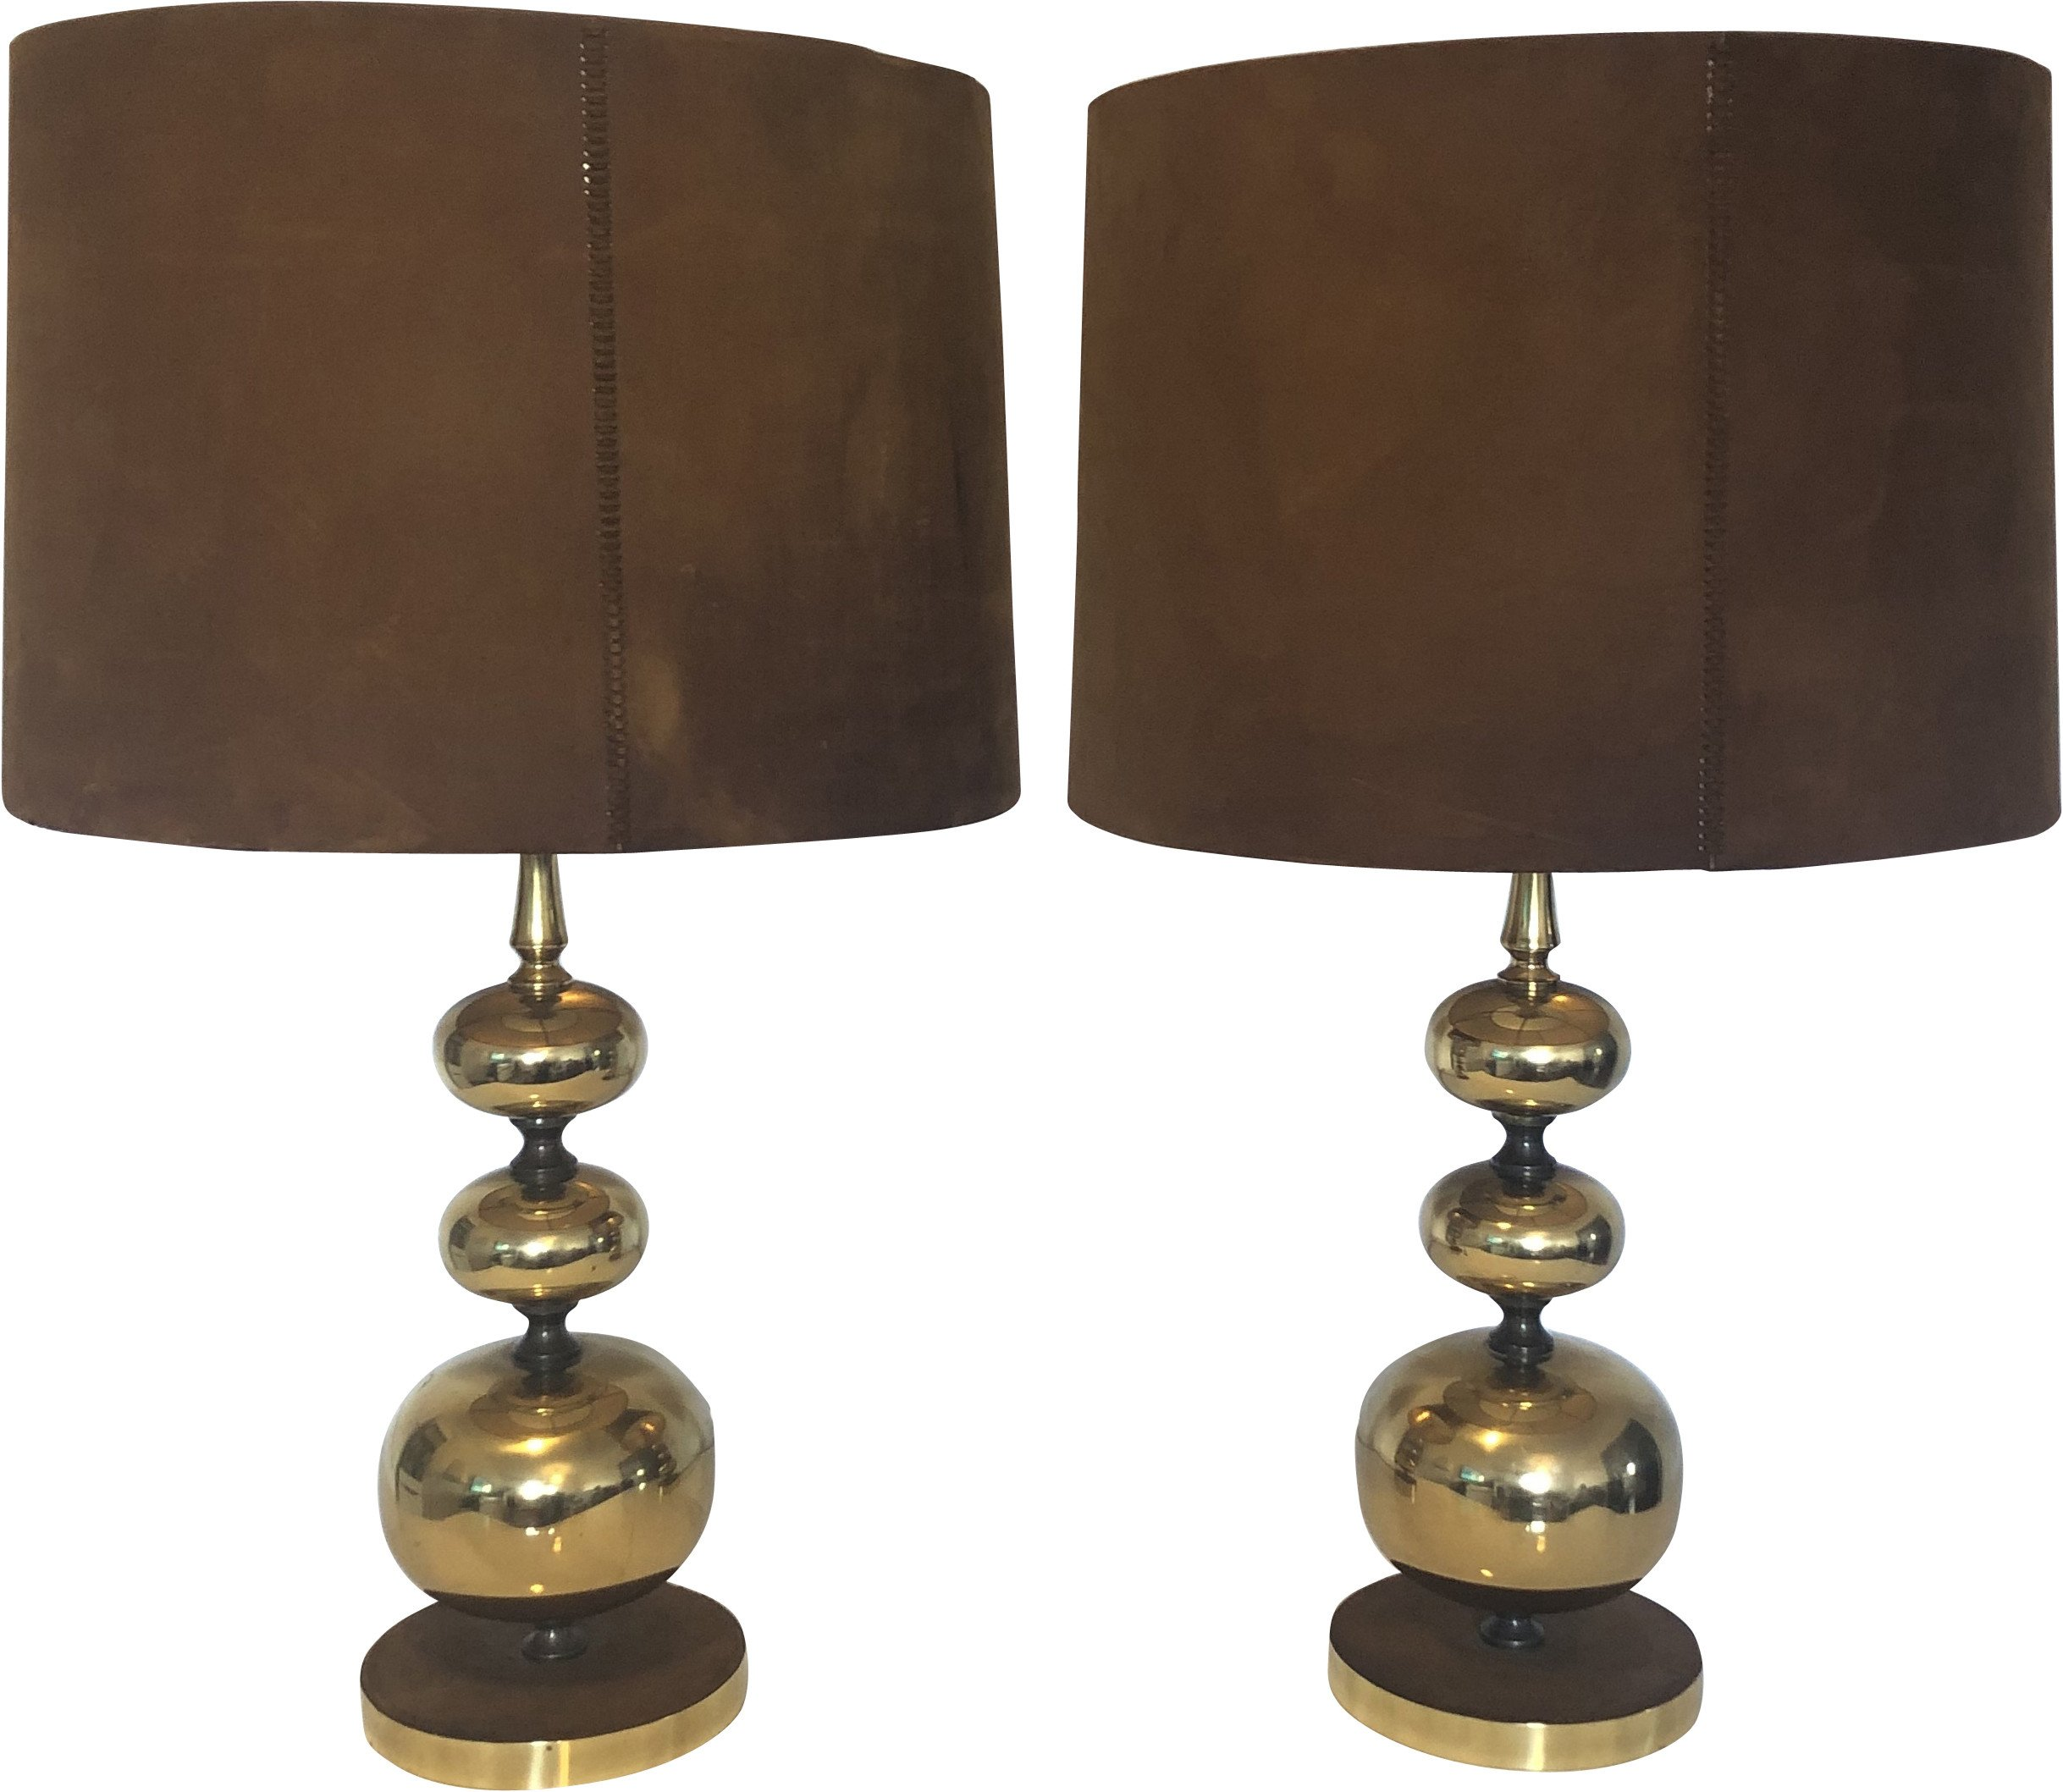 Pair of Table Lamps, Germany, 1960s